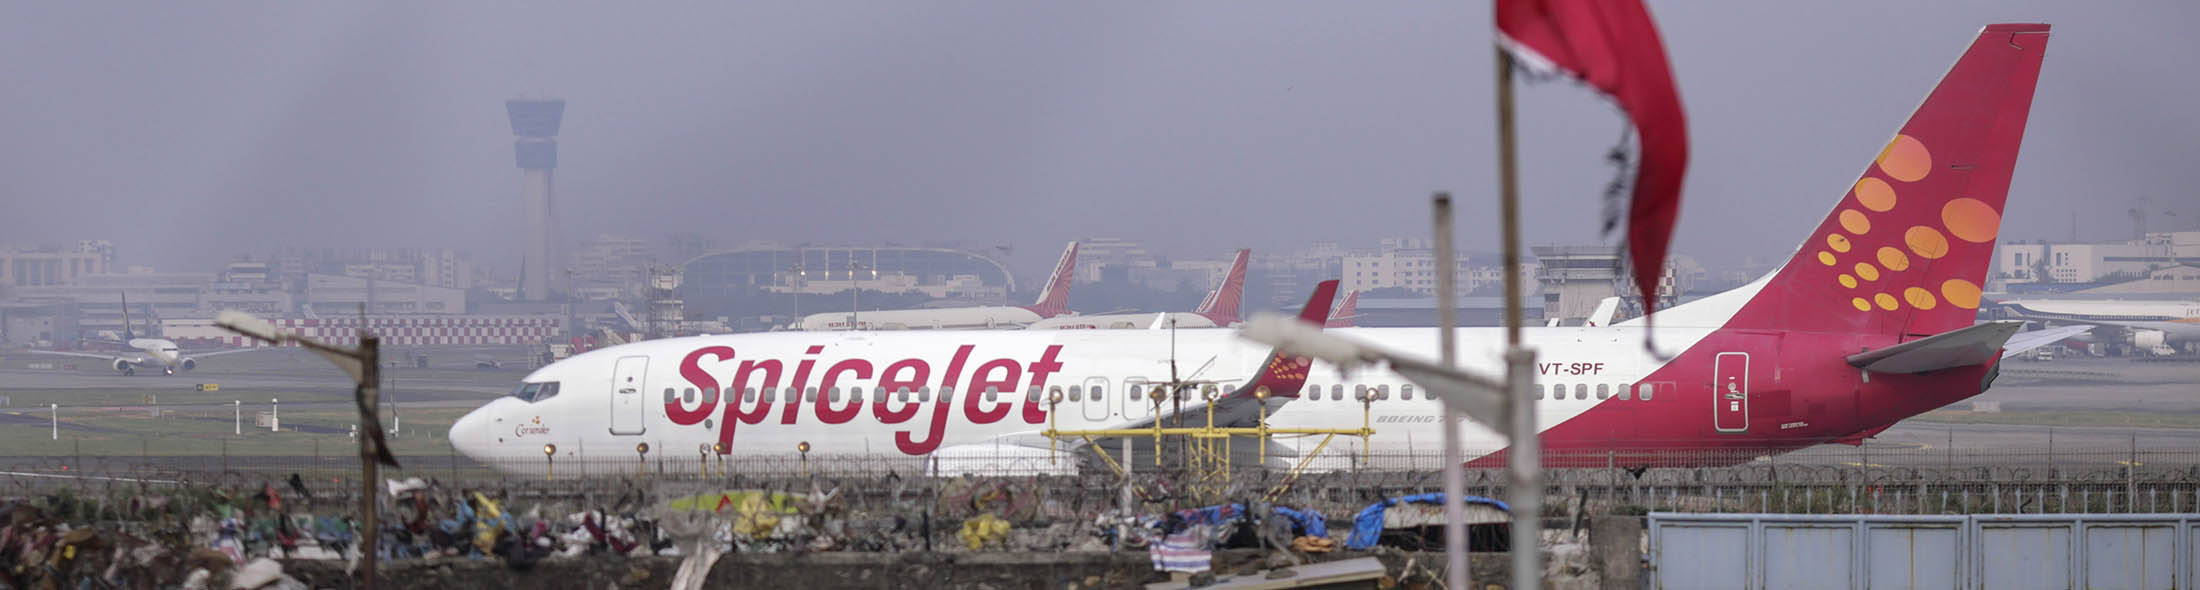 A Boeing 737 aircraft operated by SpiceJet taxies at Chhatrapati Shivaji International Airport in Mumbai, India, on Oct. 26, 2015. MUST CREDIT: Bloomberg photo by Dhiraj Singh.